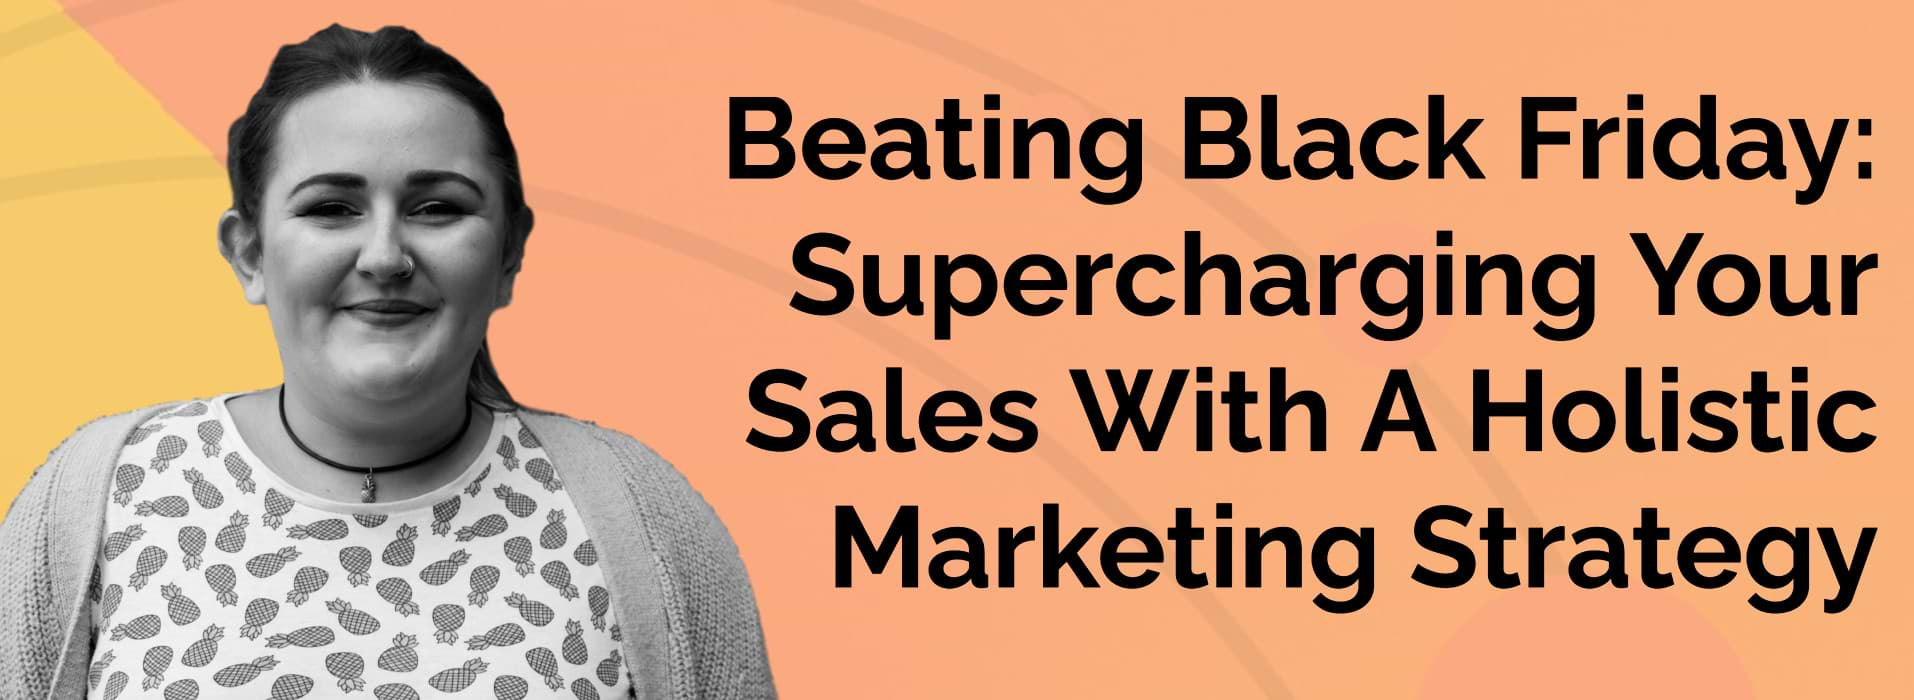 Beating Black Friday - Supercharging Your Sales With A Holistic Marketing Strategy